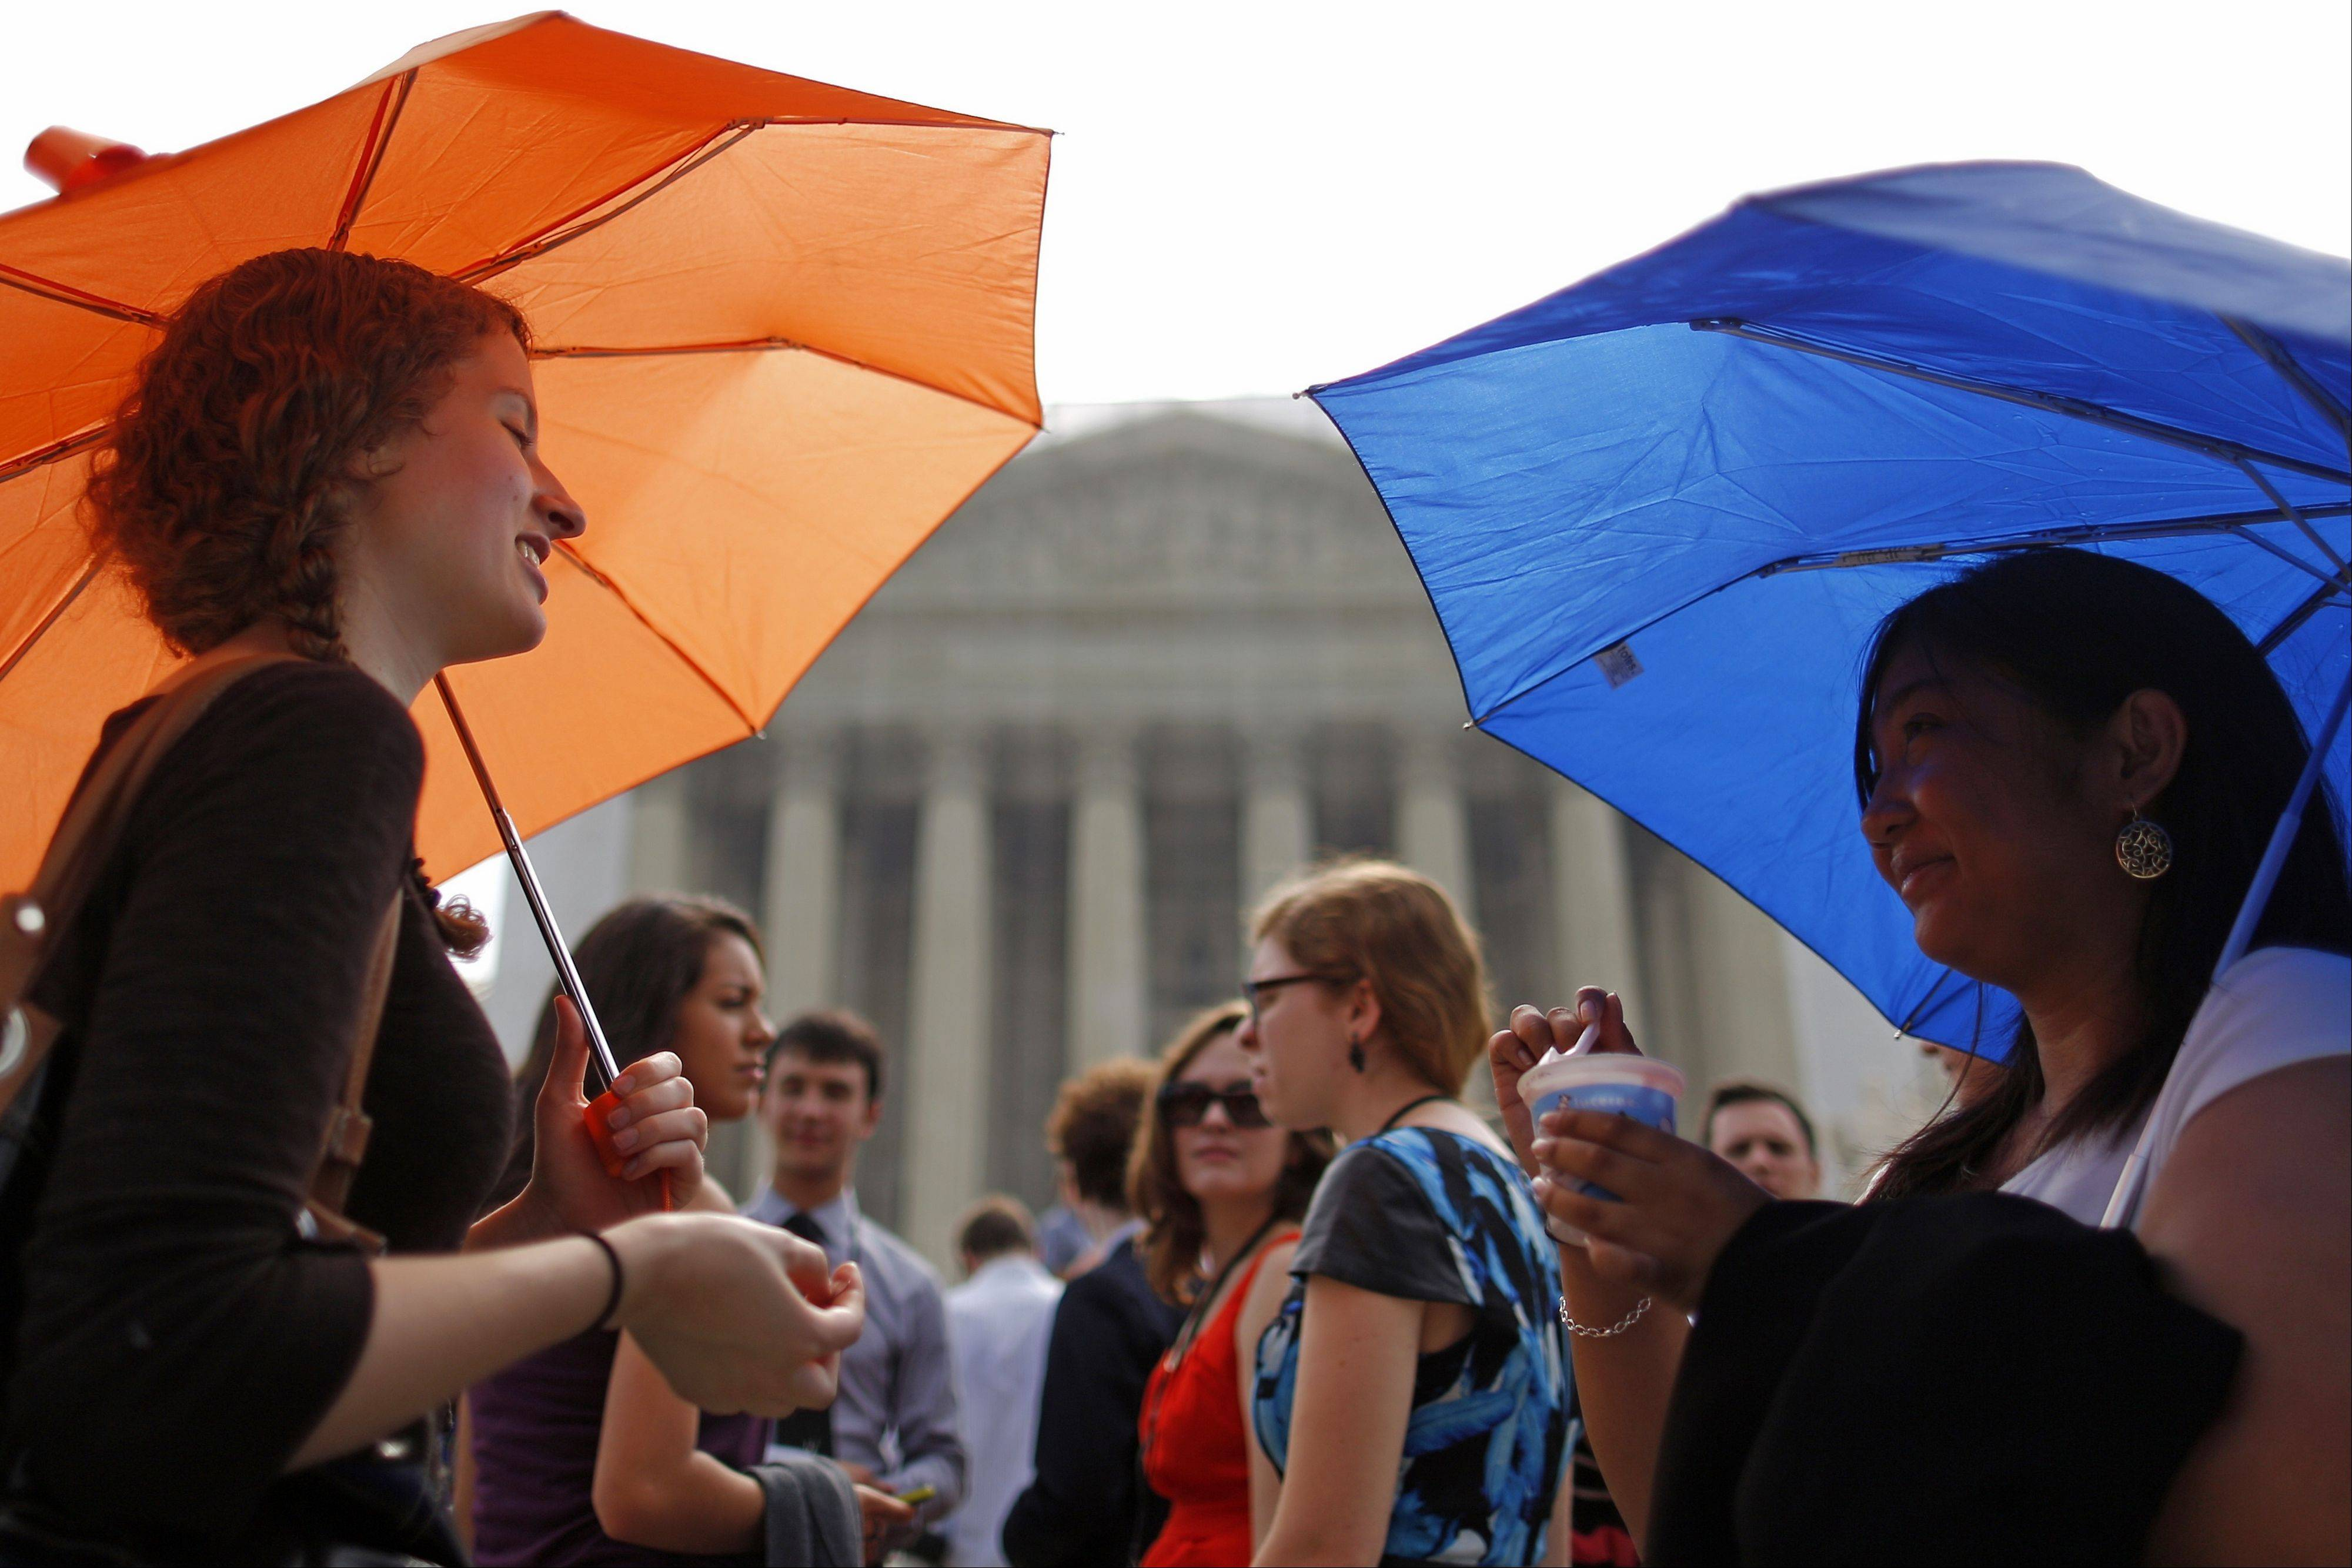 Livia Maas, left, and Khrystan Policarpio, both from Berkeley, Calif., stand under umbrellas to shield themselves from the sun in front of the Supreme Court in Washington Monday, as they queue for the court's session.